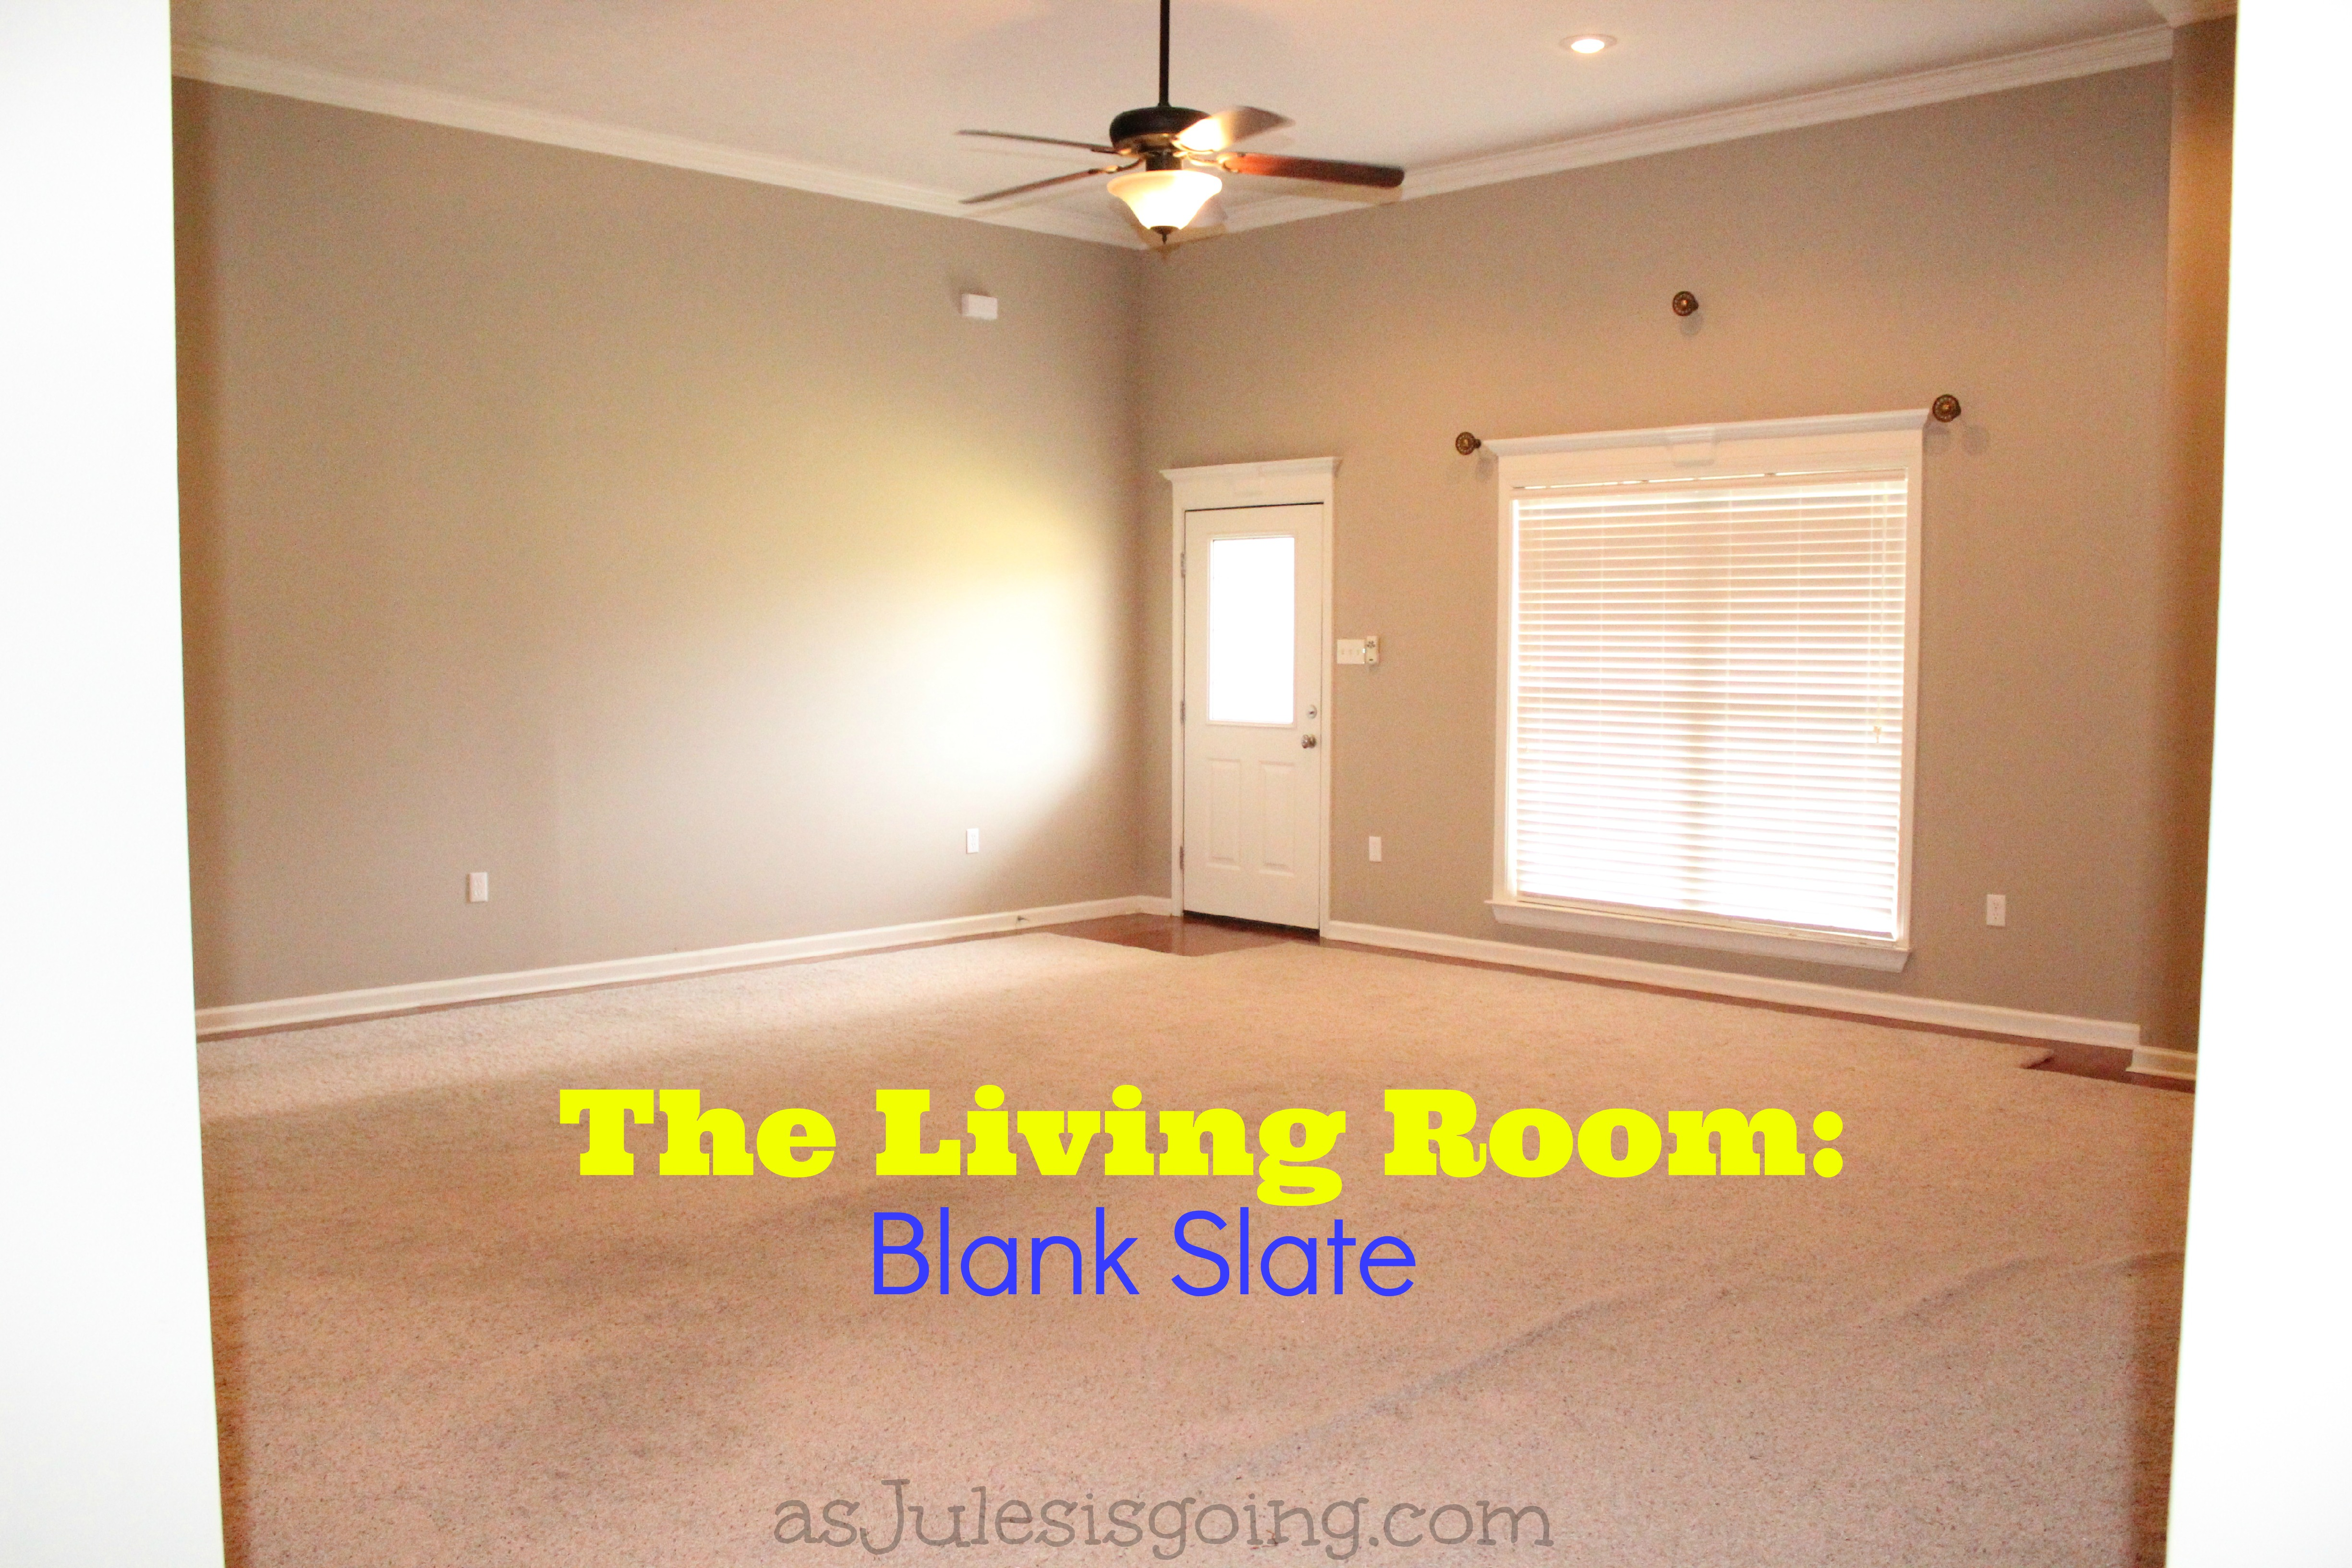 Blank Living Room Wall. Bars For Living Rooms. Discount Living Room Sets. Live Cam Rooms. Hippie Living Room. The Living Room St Albans. Wall Furniture For Living Room. Rustic Living Room Decor. Black Wooden Furniture Living Room